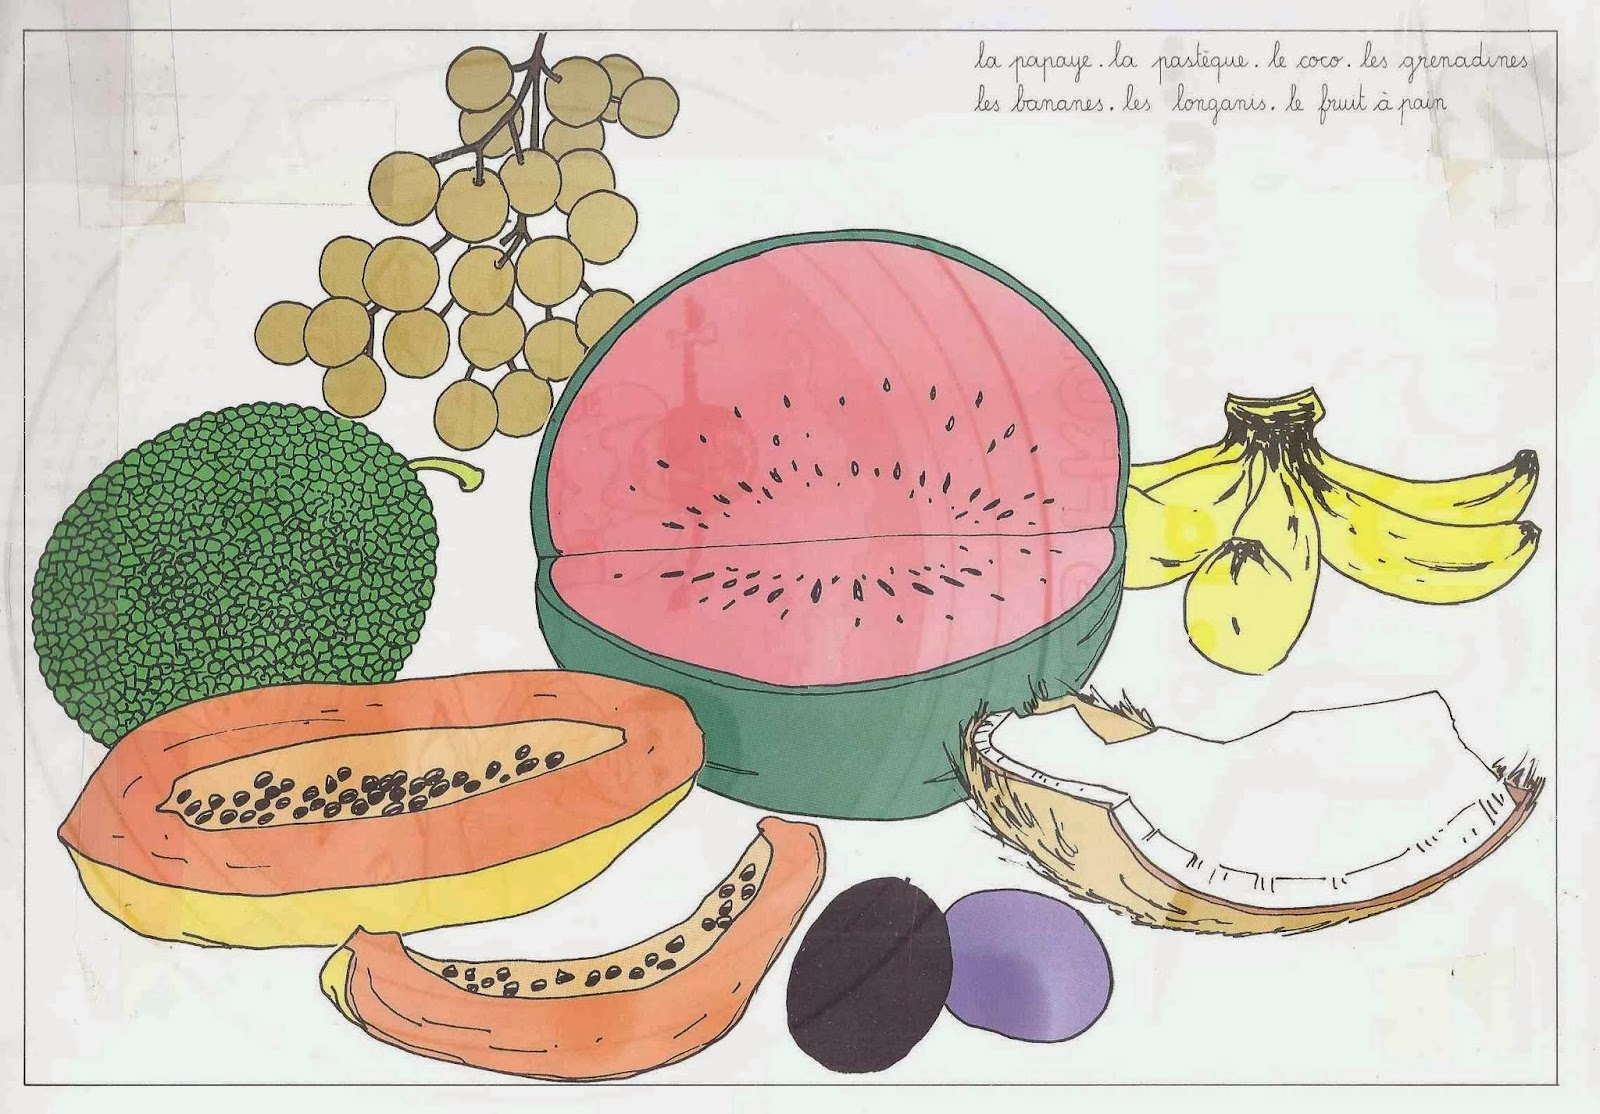 Le ons de choses images de la r union les fruits - Fruit de la ronce commune ...